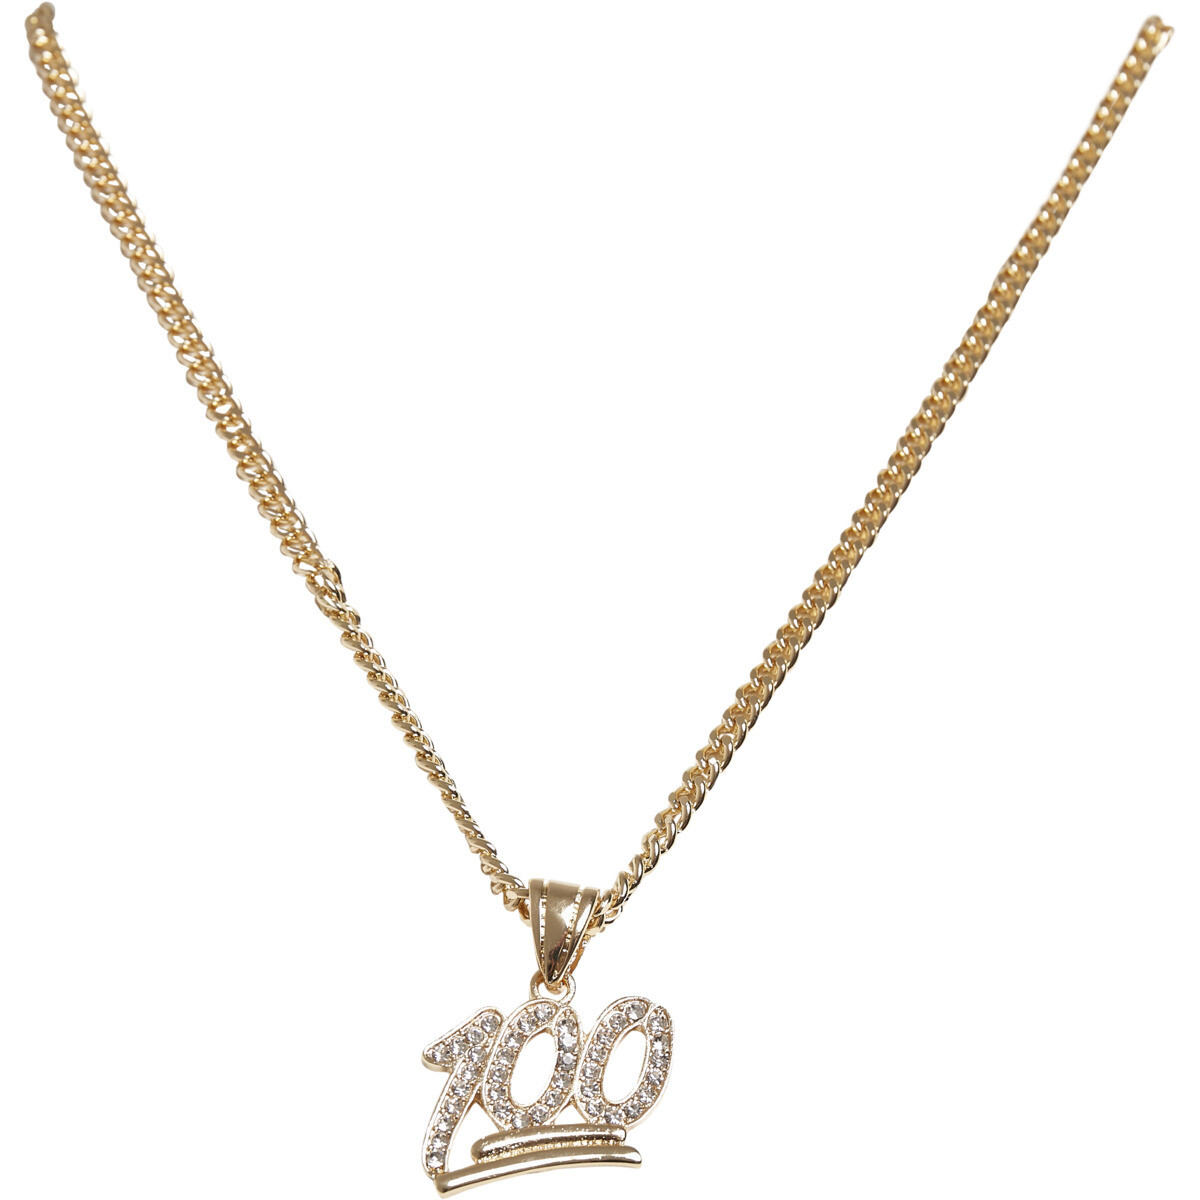 One Hundred Diamond Necklace